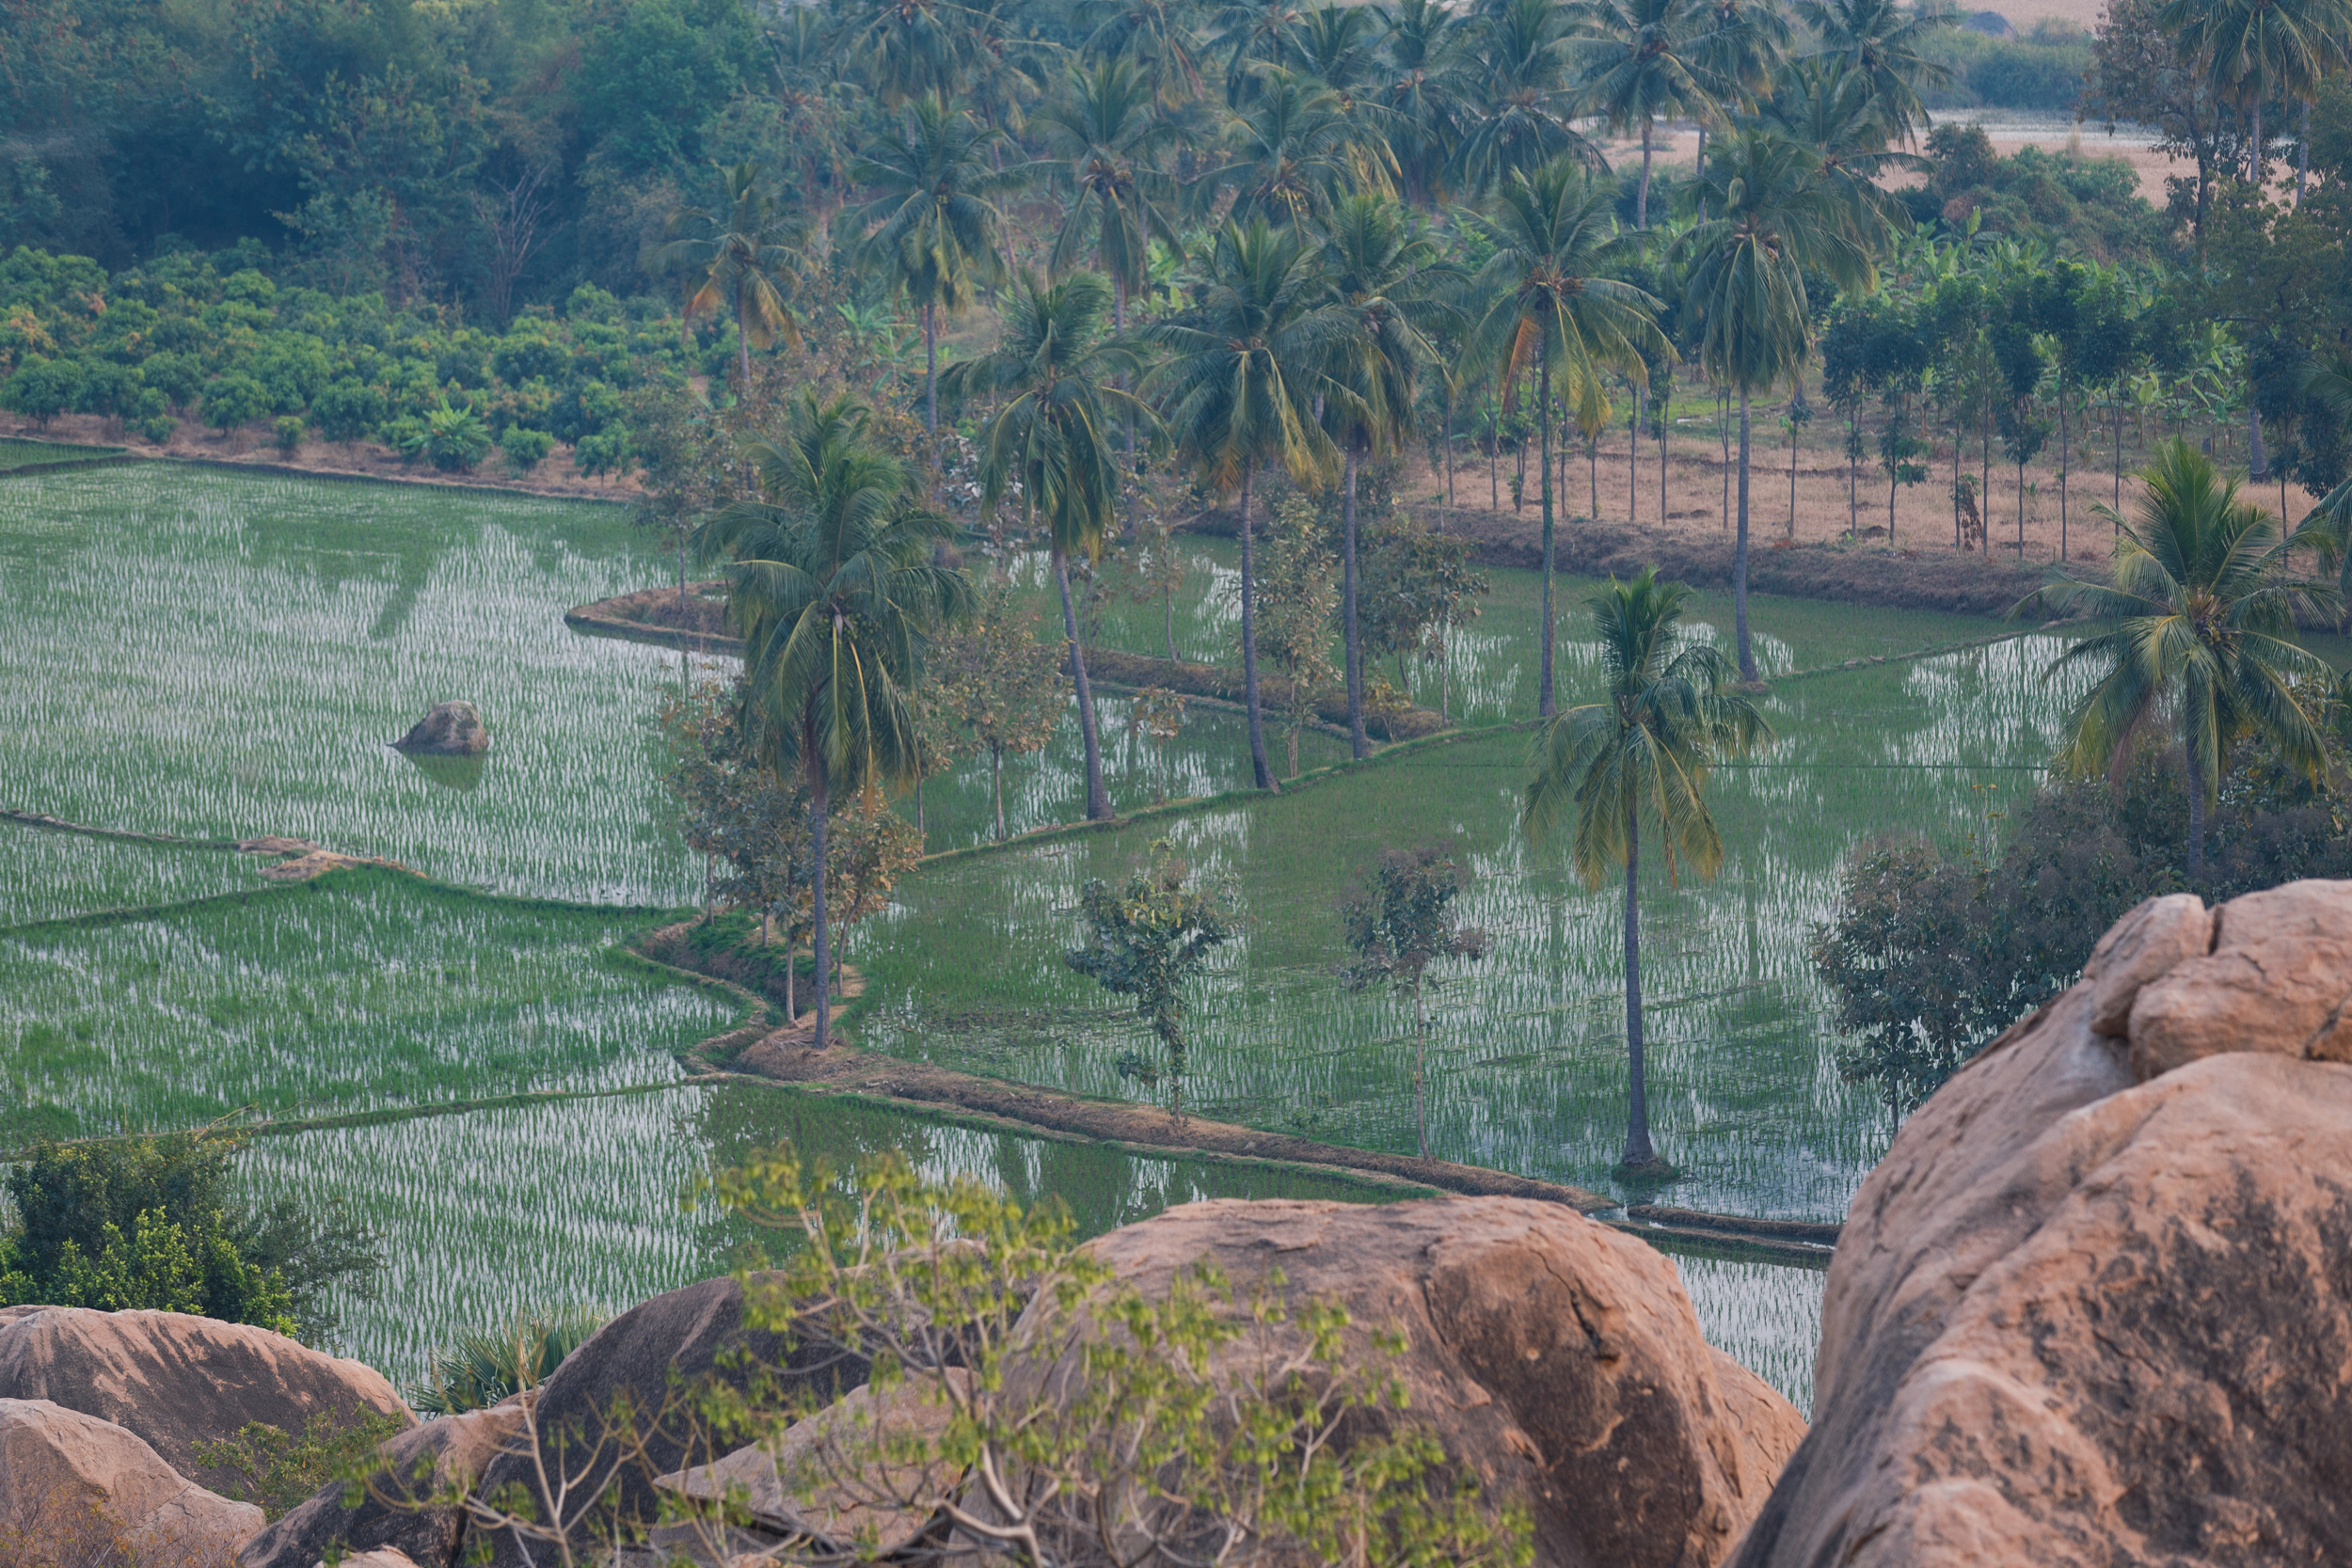 Rice paddies along the river on Hampi Island.